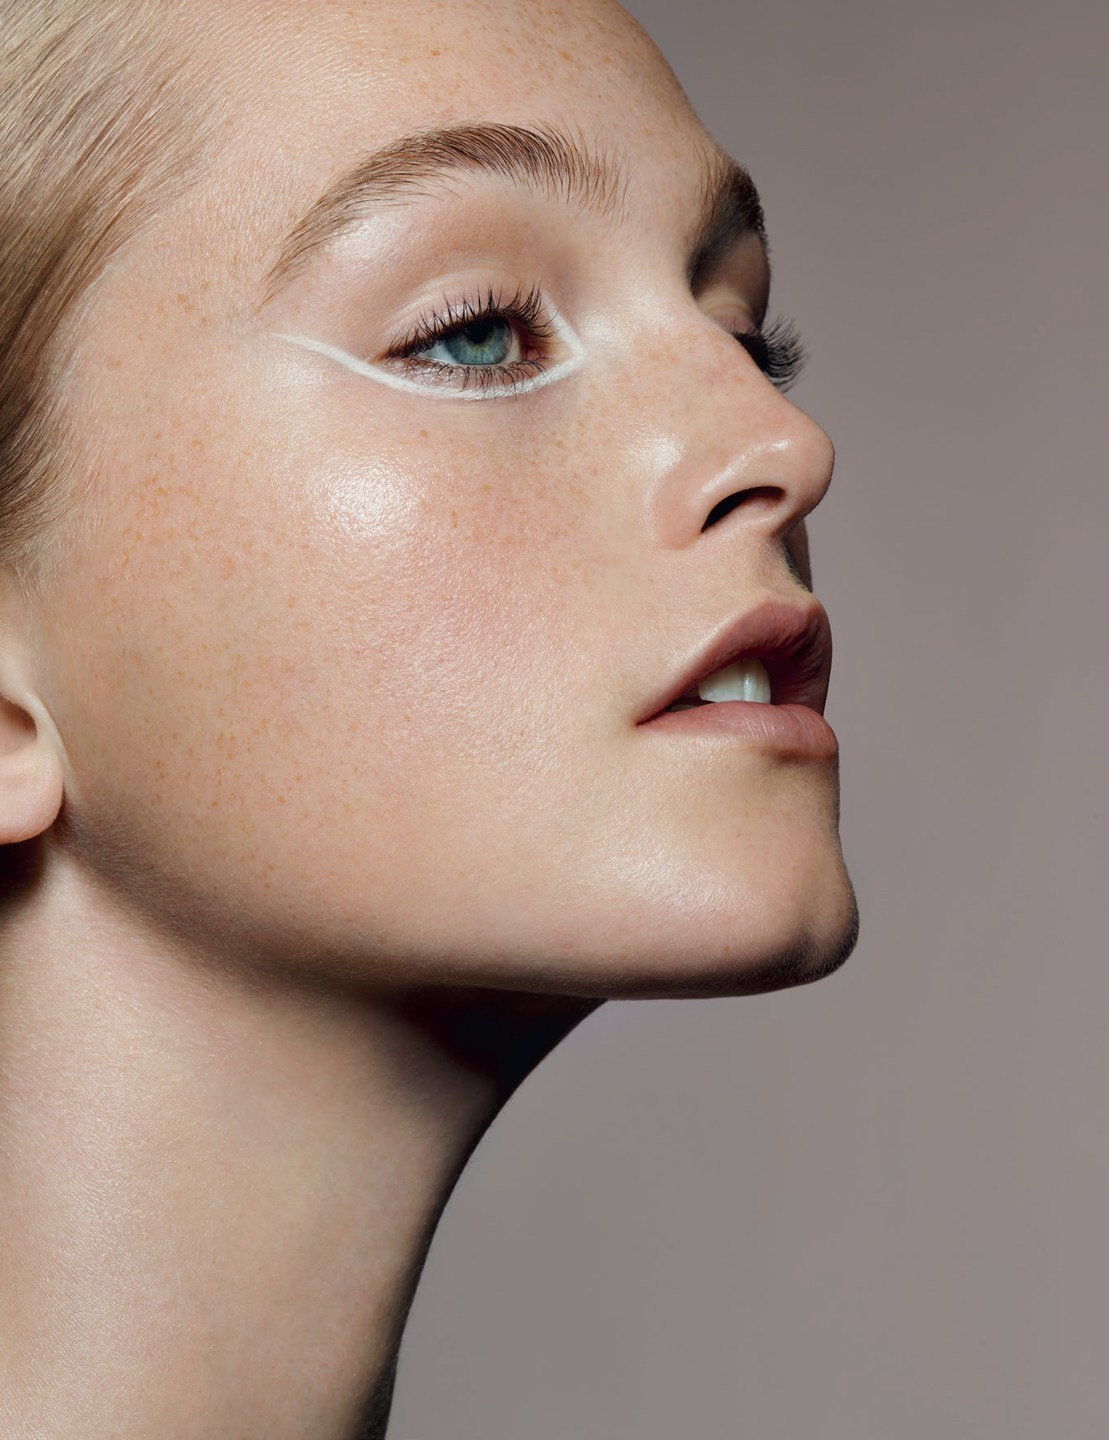 Jean Campbell Face Top Model - Jean Campbell Face Top Model